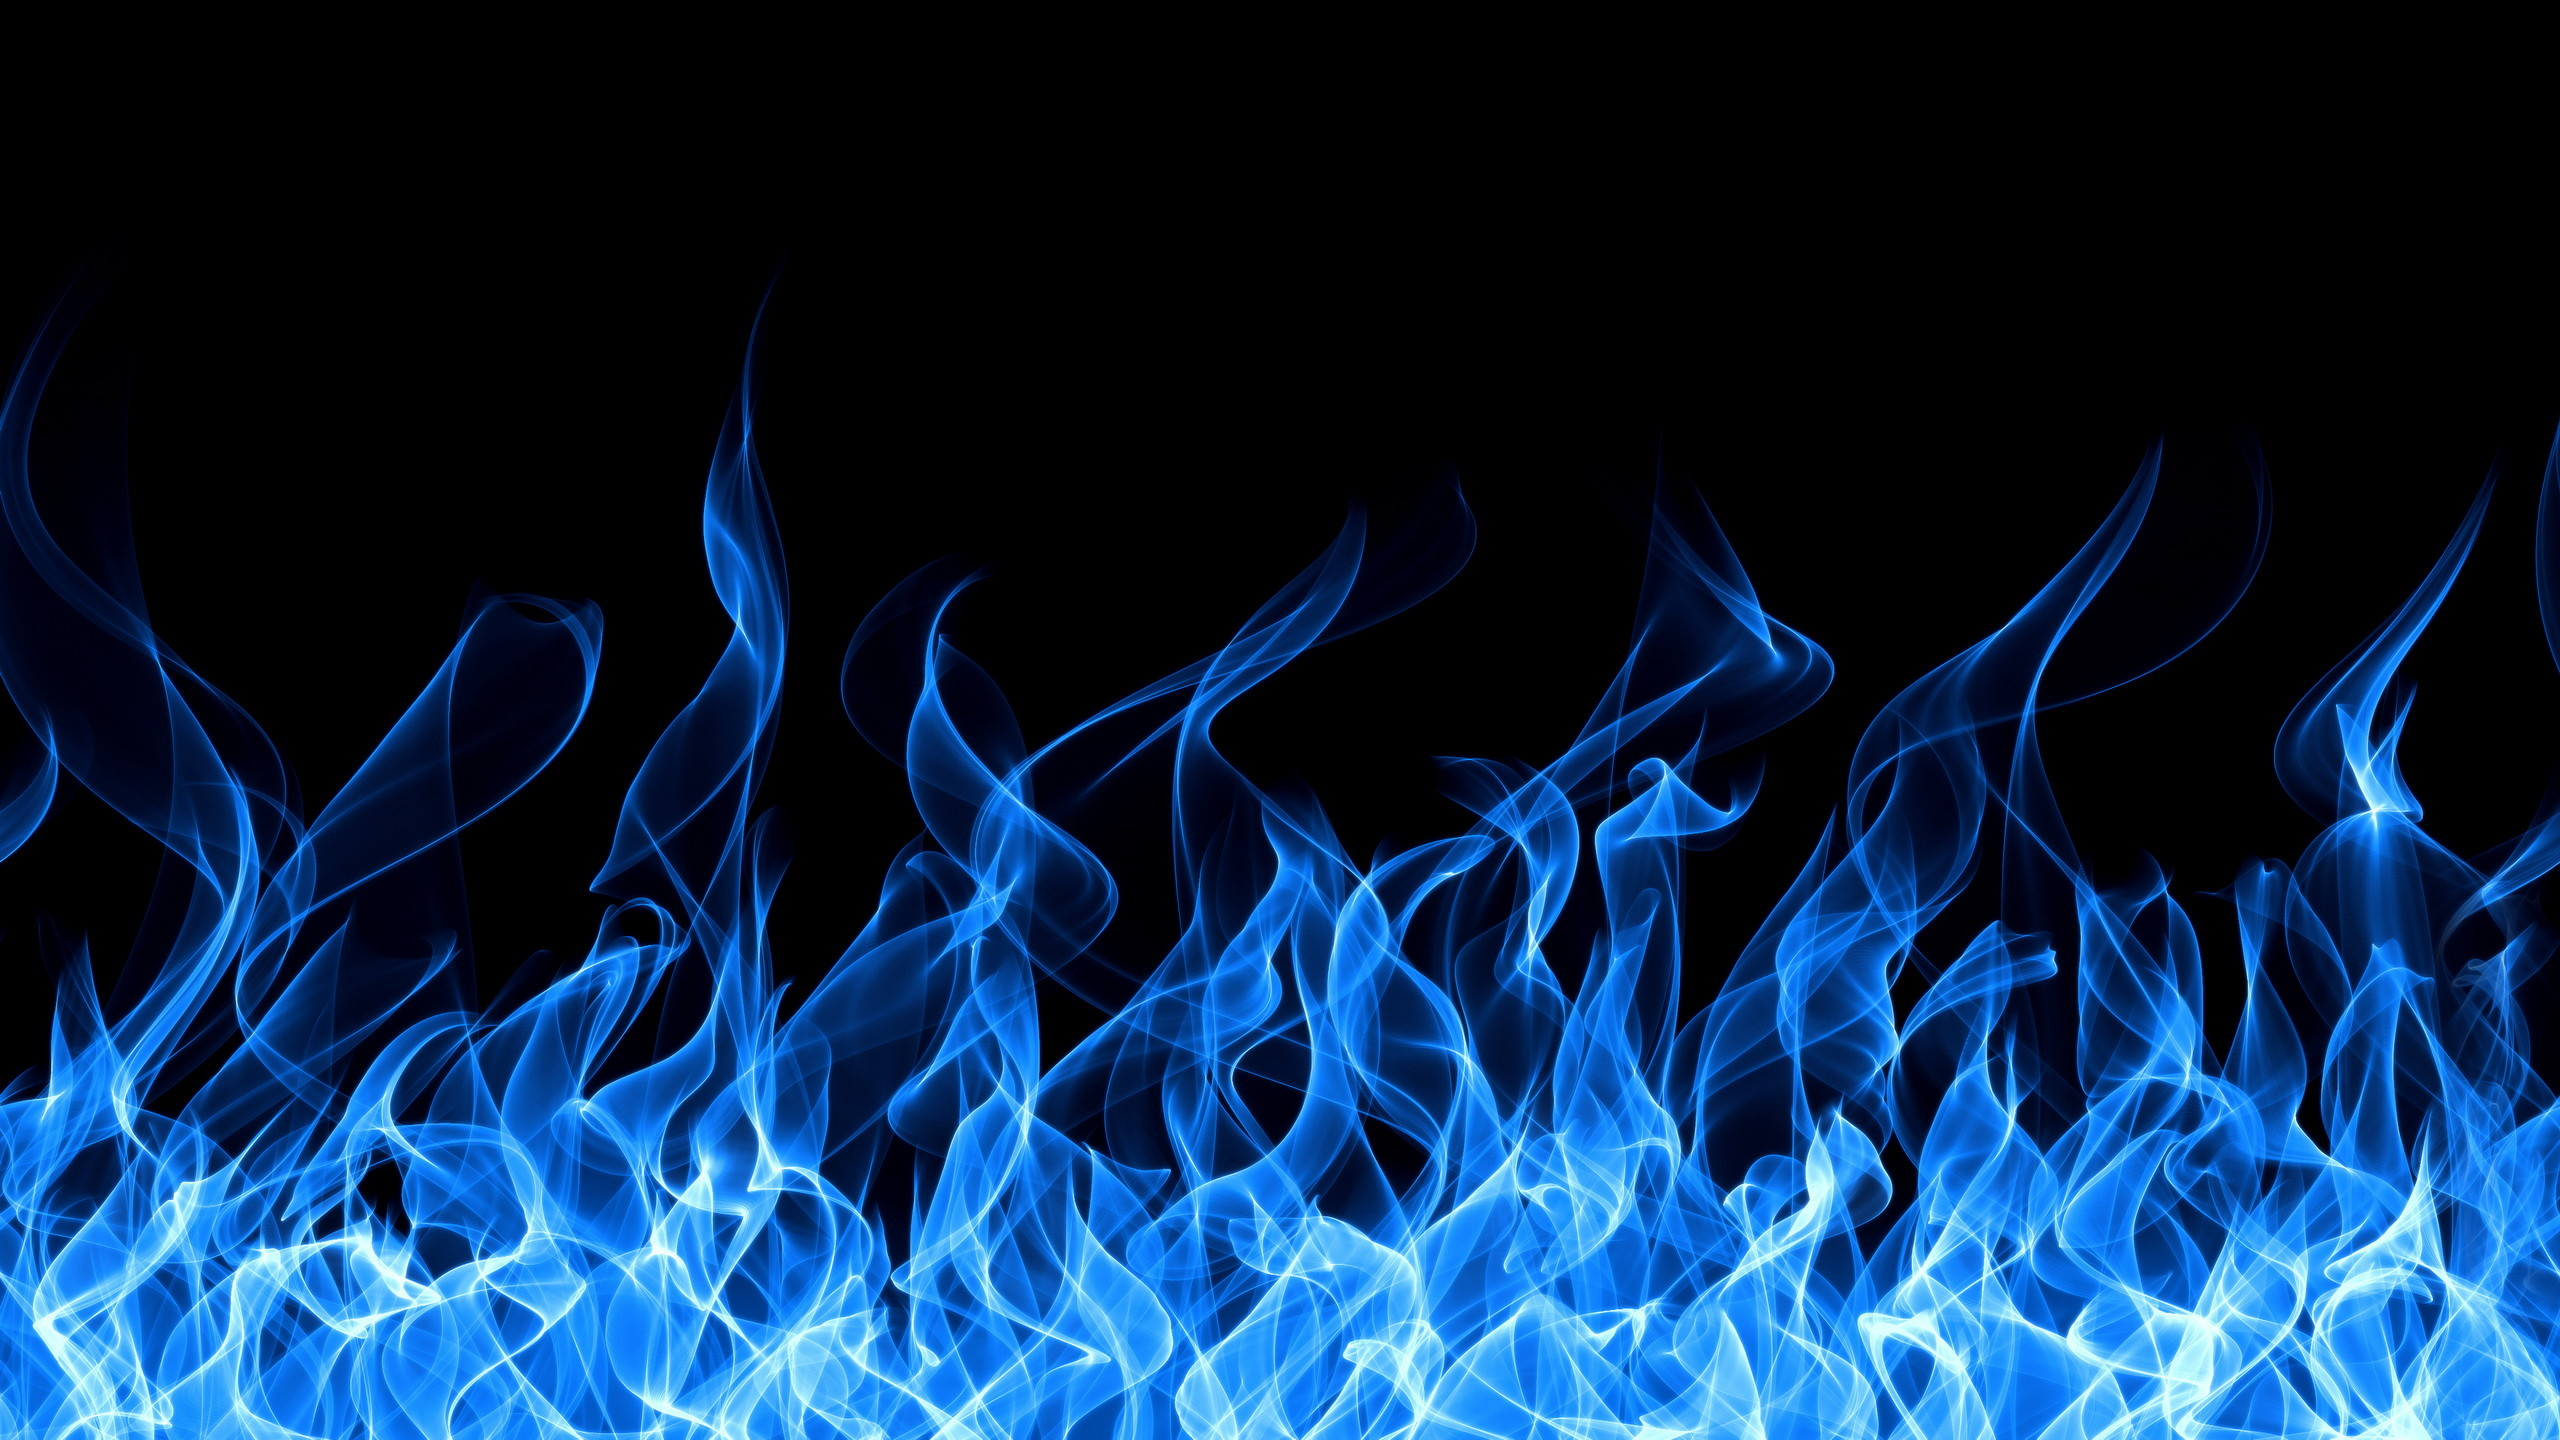 Blue fire wallpaper hd 70 images 2560x1440 gallery blue fire hd wallpaper lamborghini aventador mobile wallpaper thecheapjerseys Images